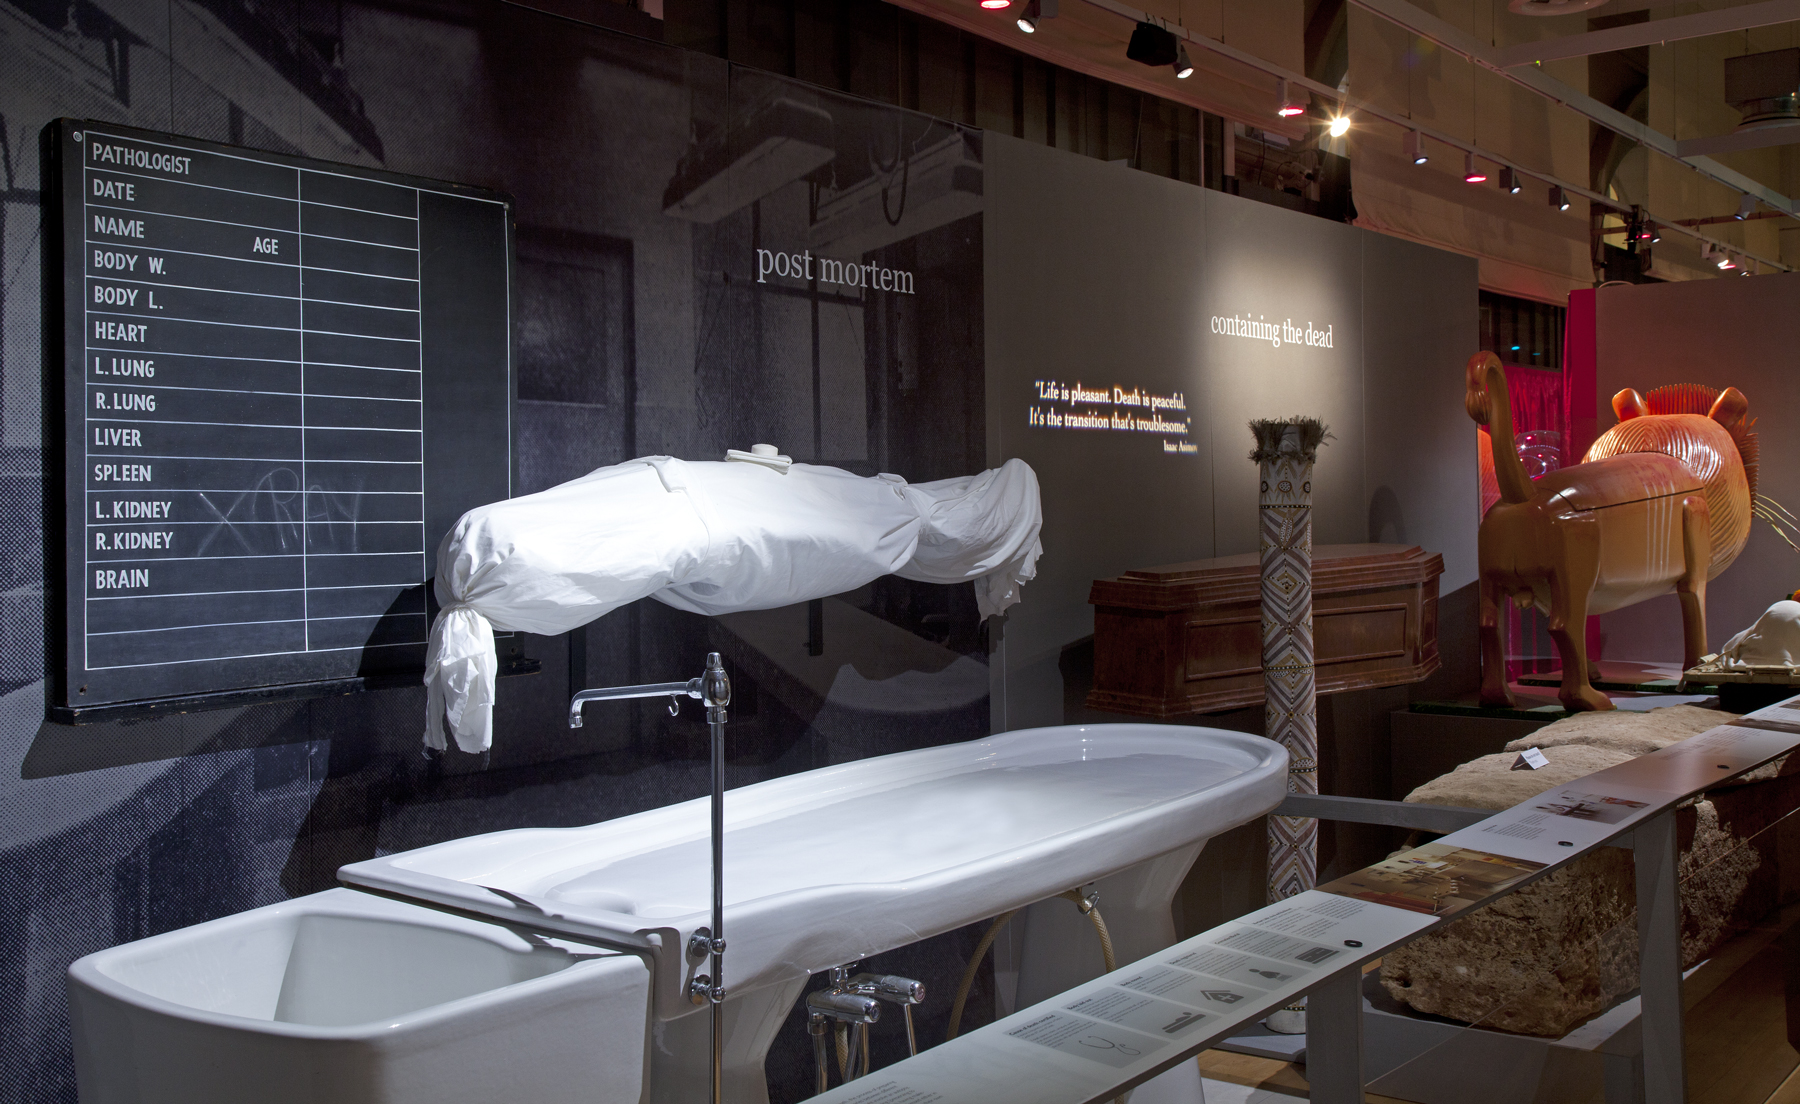 death: the human experience | Bristol Museum & Art Gallery